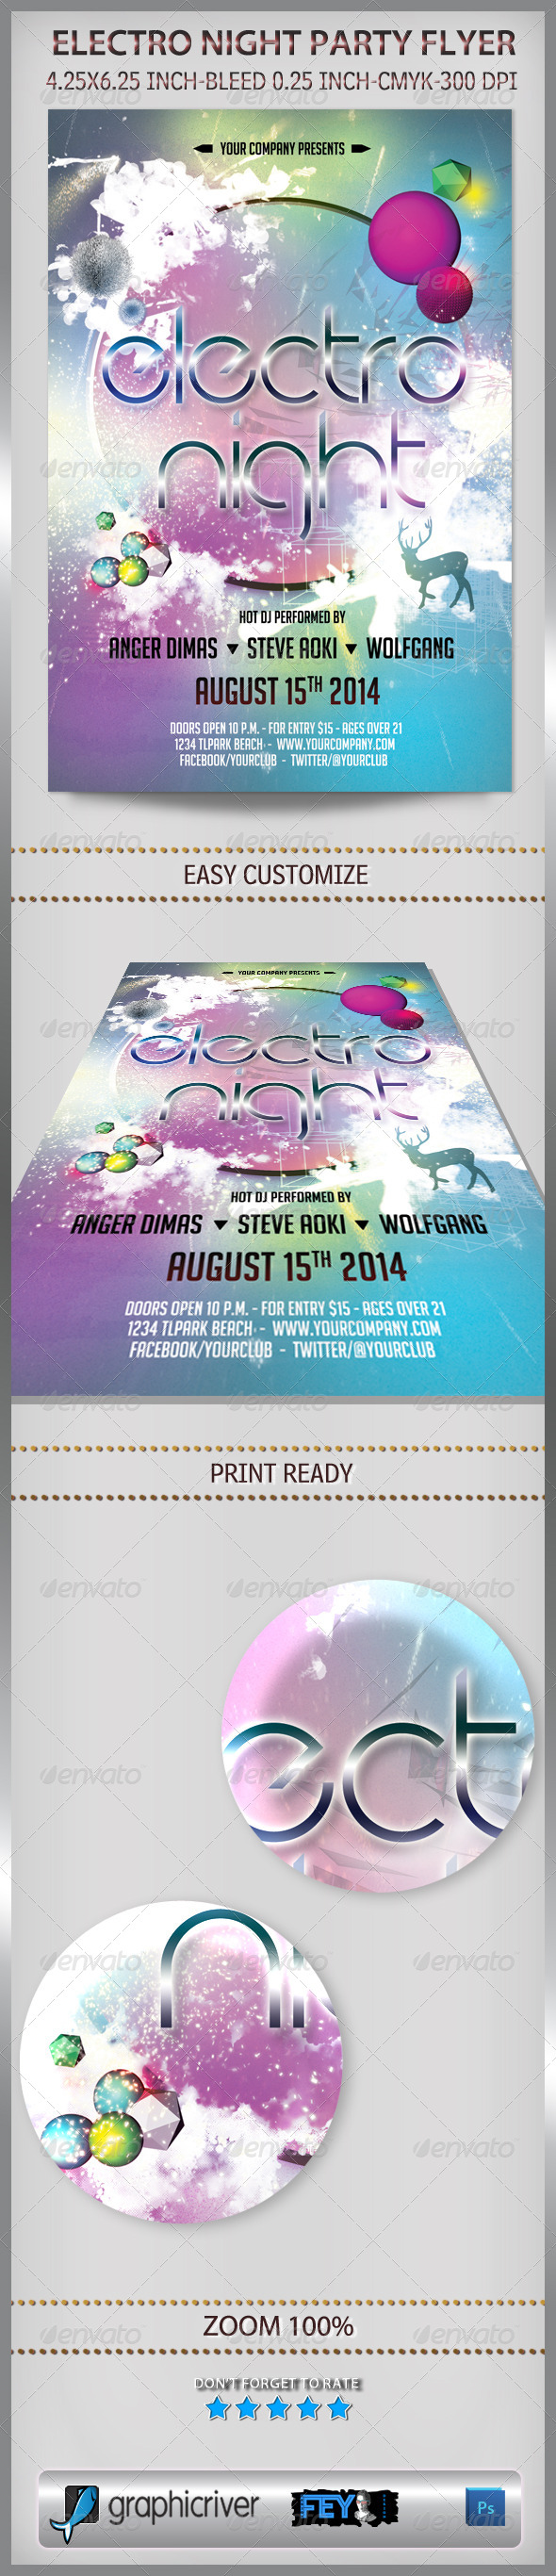 GraphicRiver Electro Night Party Flyer 7006349